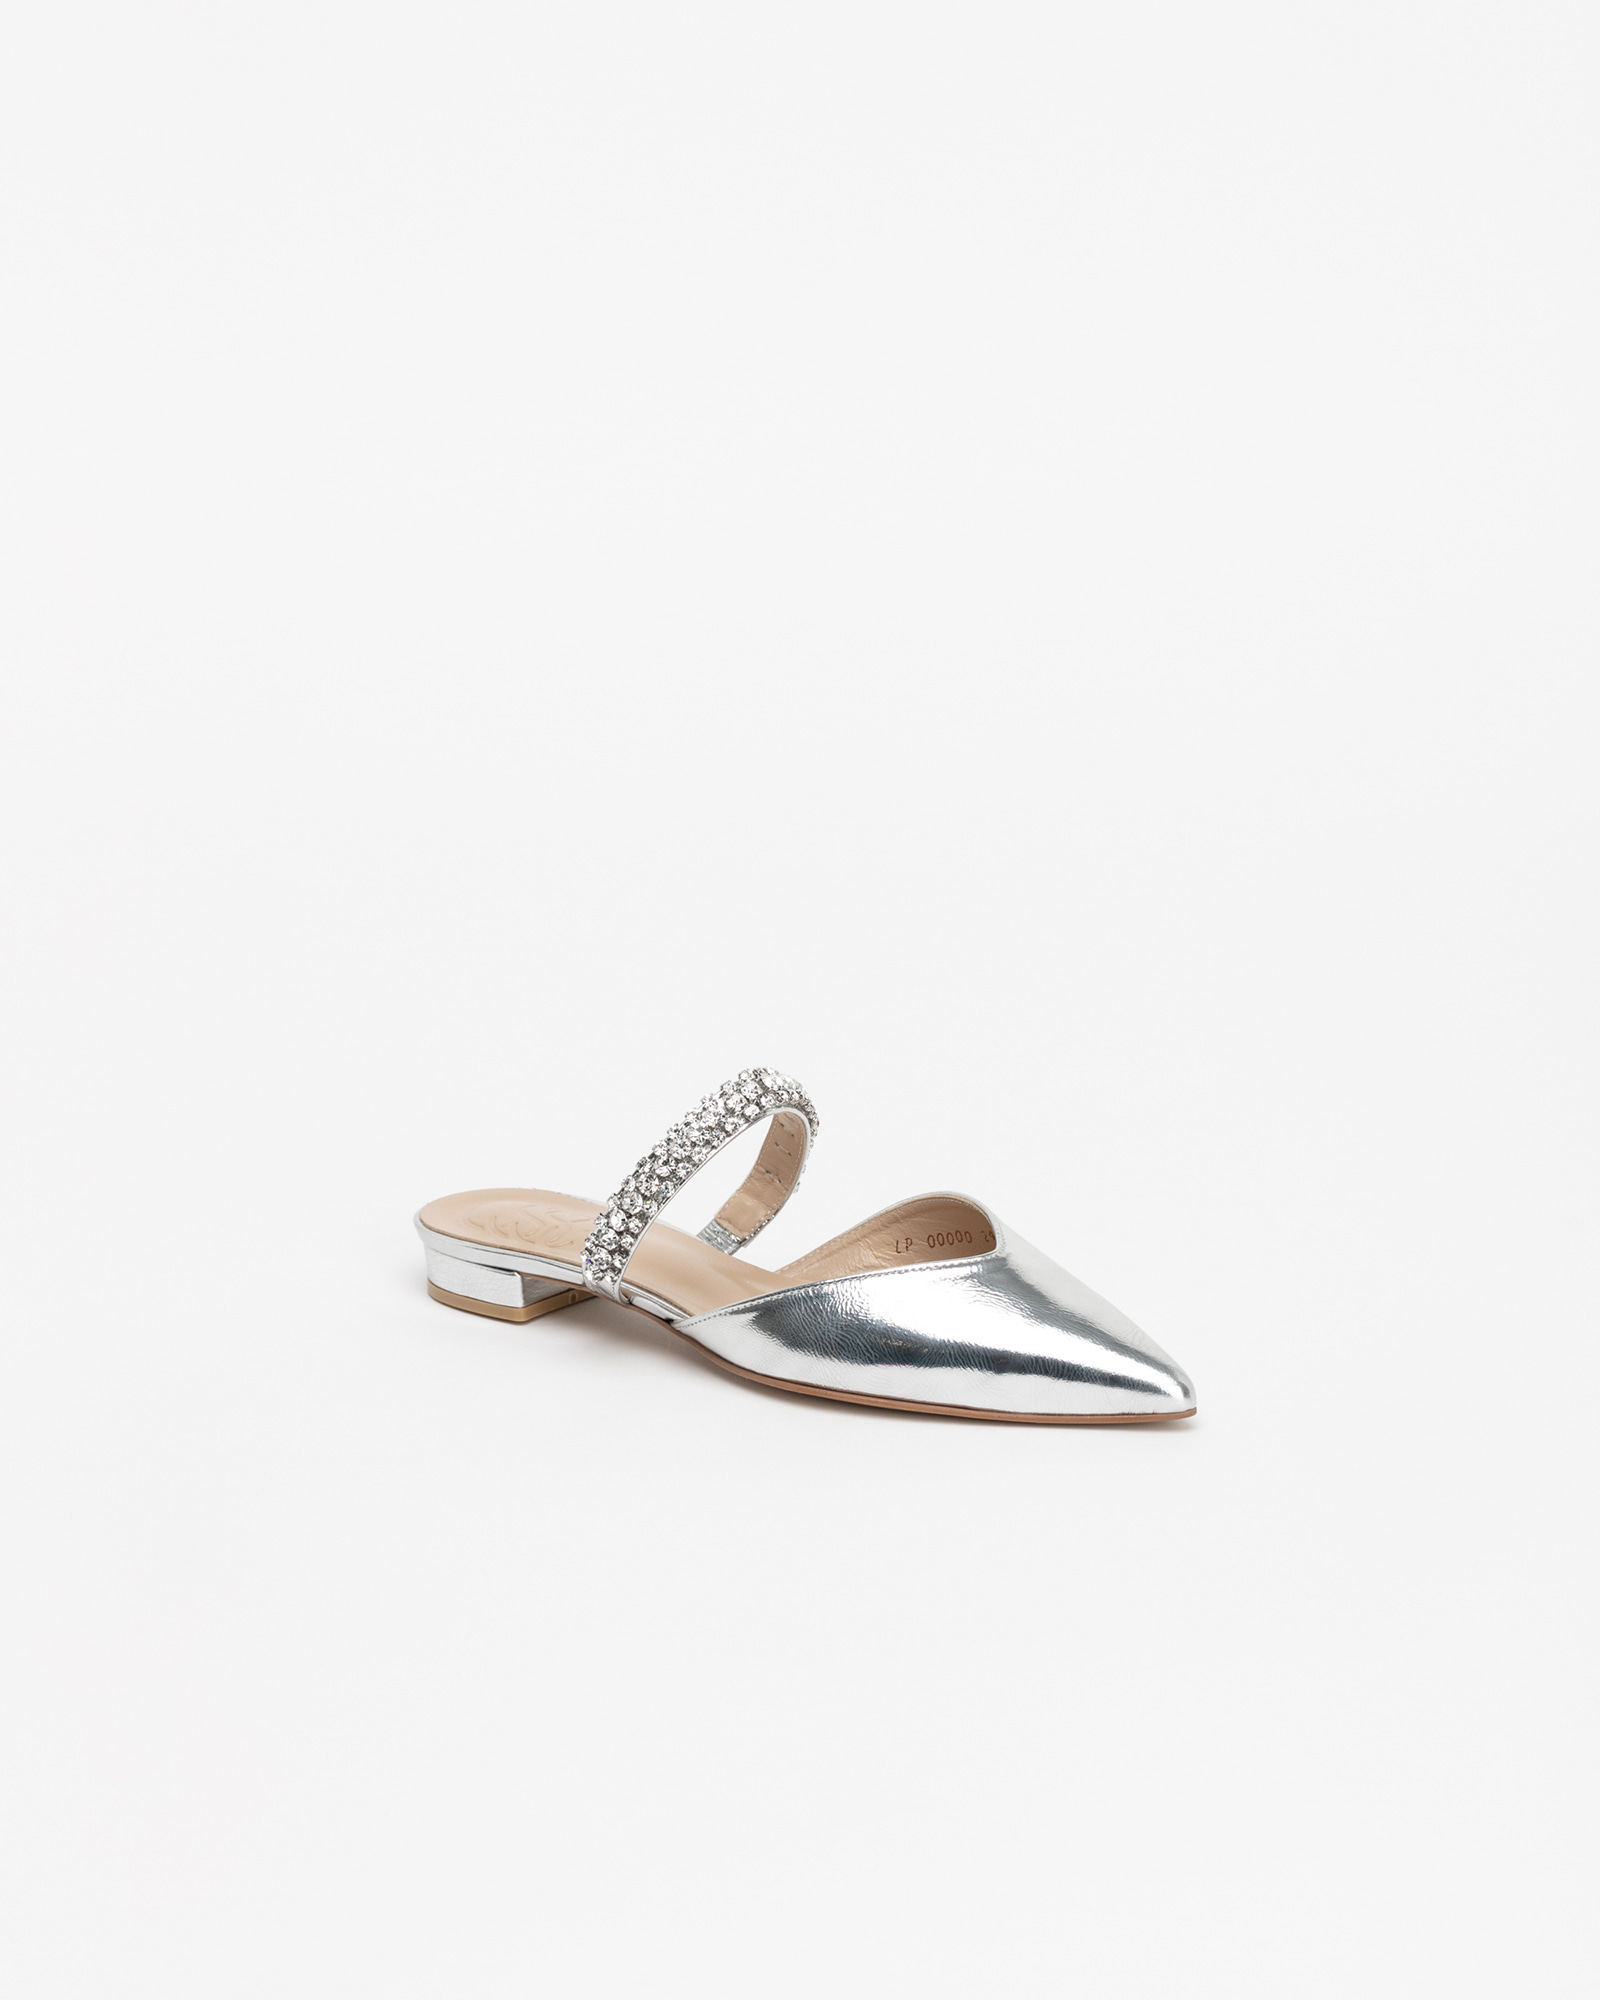 Patio Jeweled Slides in Textured Silver